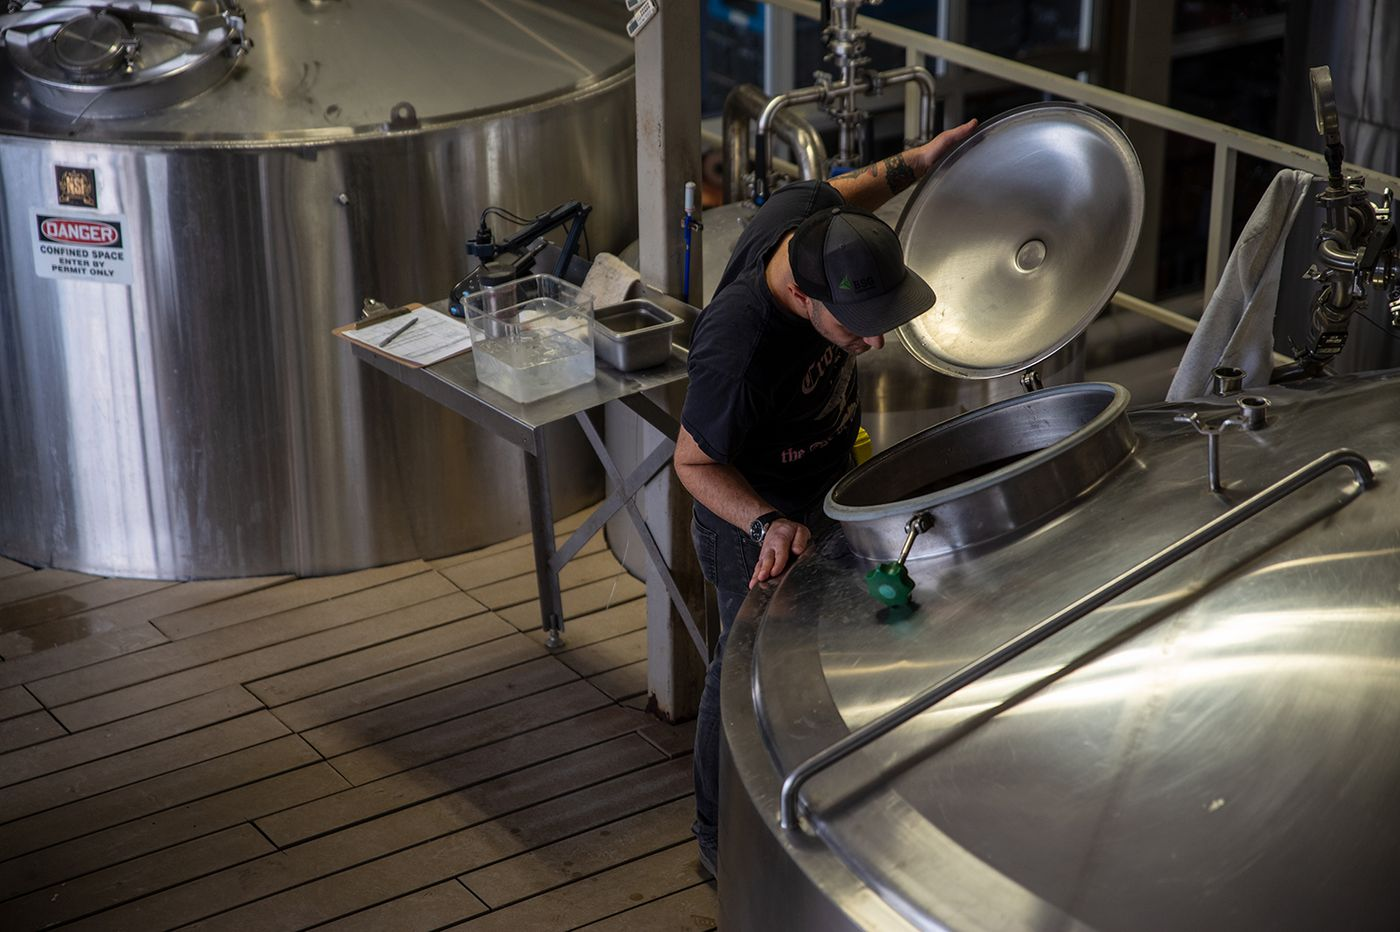 Mainstay Independent, a brewery, opens at former Yards site